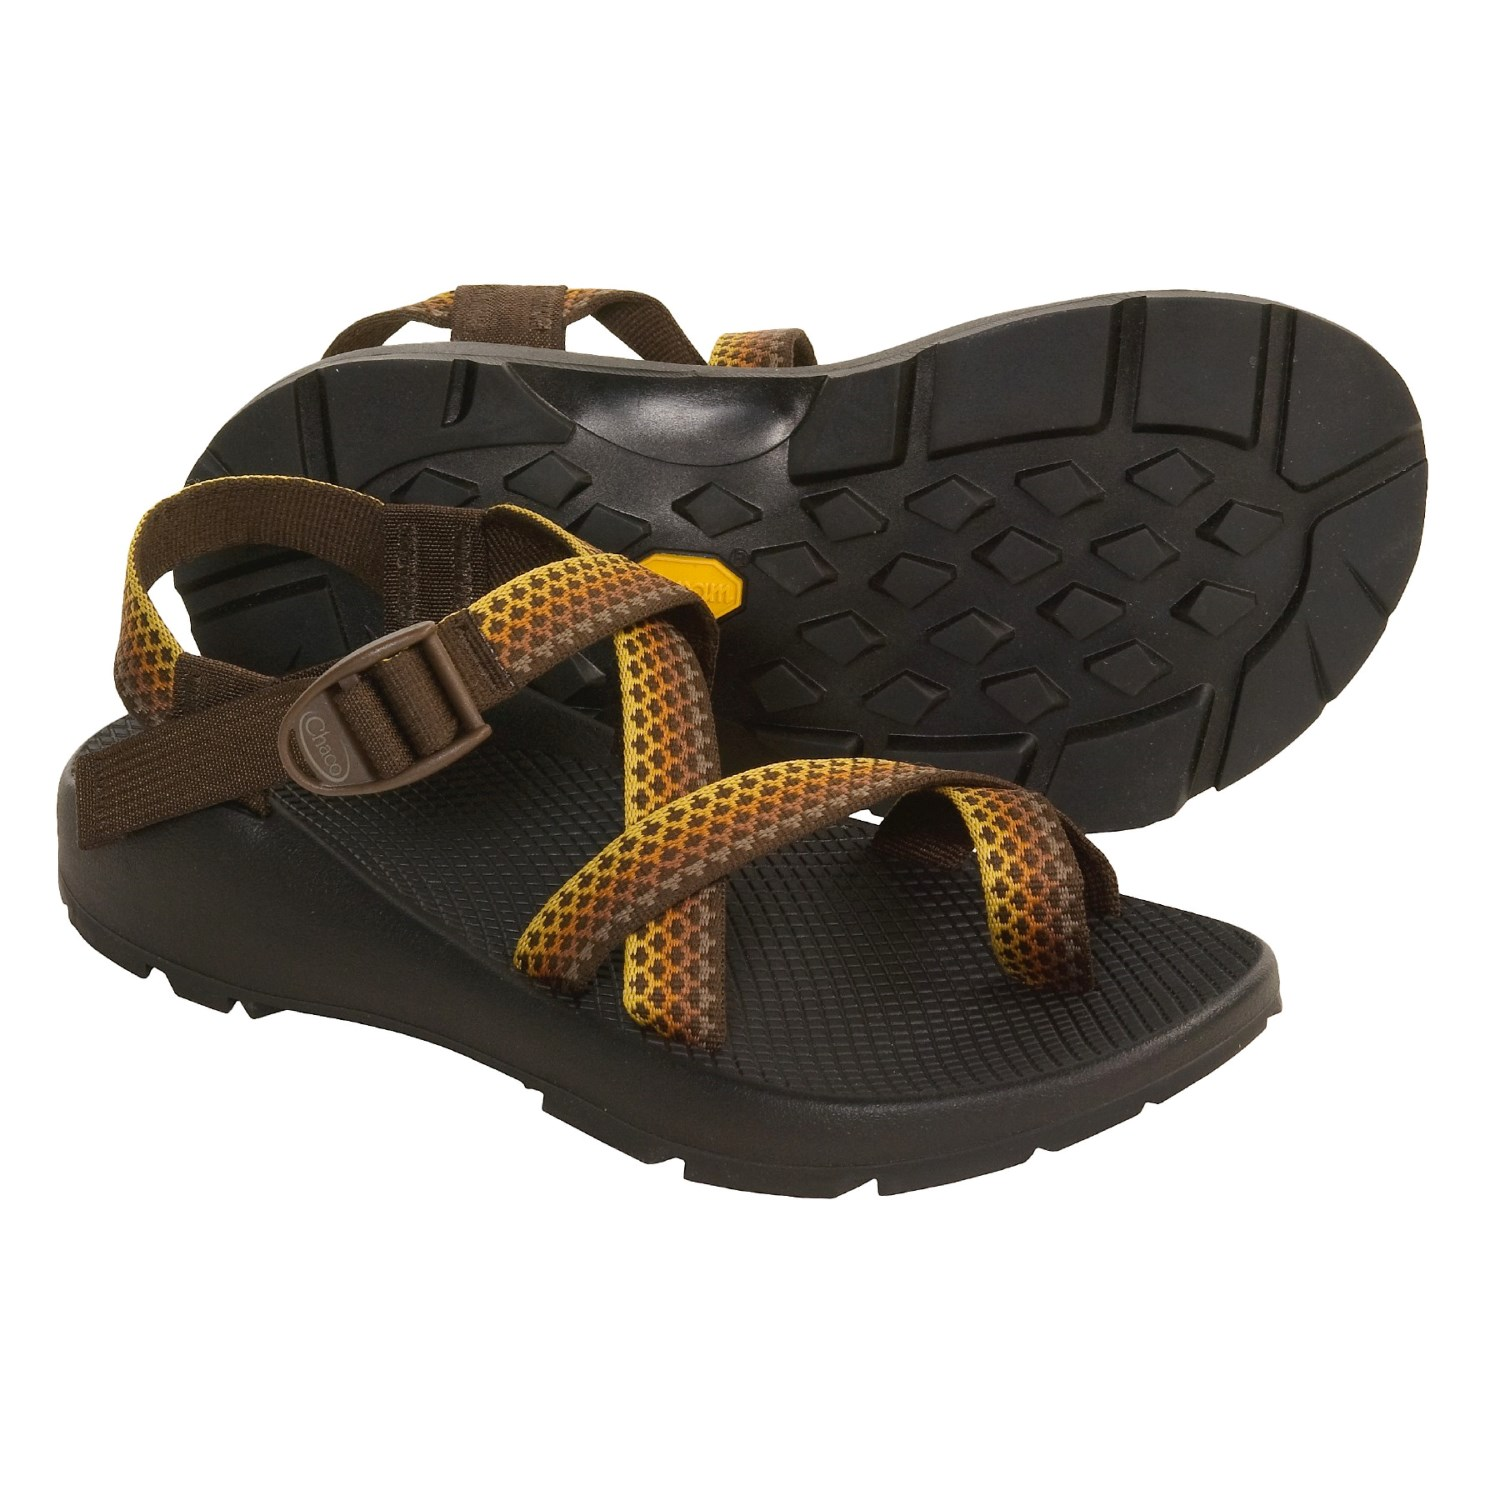 e804a0426f50 Chaco Z 2 Pro Sport Sandals (For Men) 2211X 22 on PopScreen